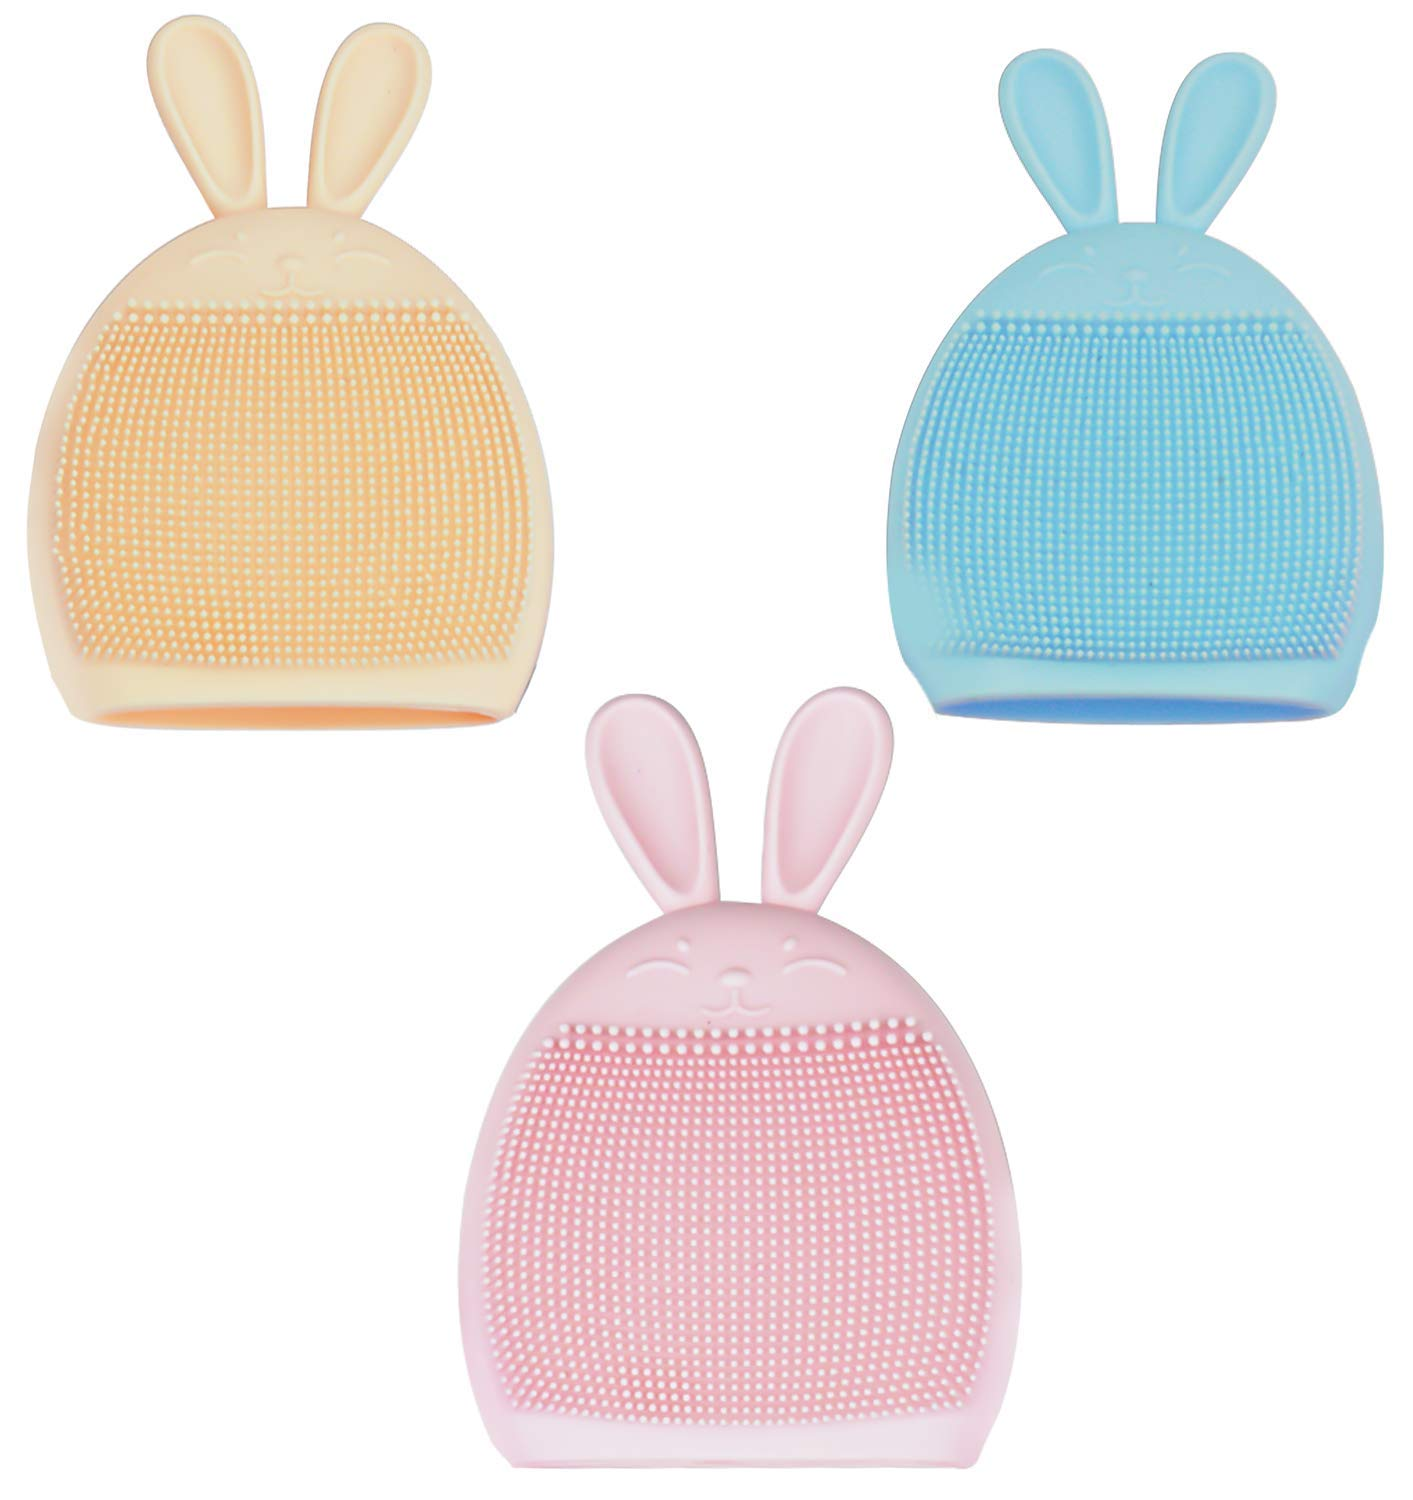 Silicone Face Brush, Face Cleanser and Massager Scrubber Pad, Super Soft Manual Facial Cleansing Brush, Gentle Exfoliating, Removing Blackhead, Massaging Brush (Rabbit-3 pack- B)